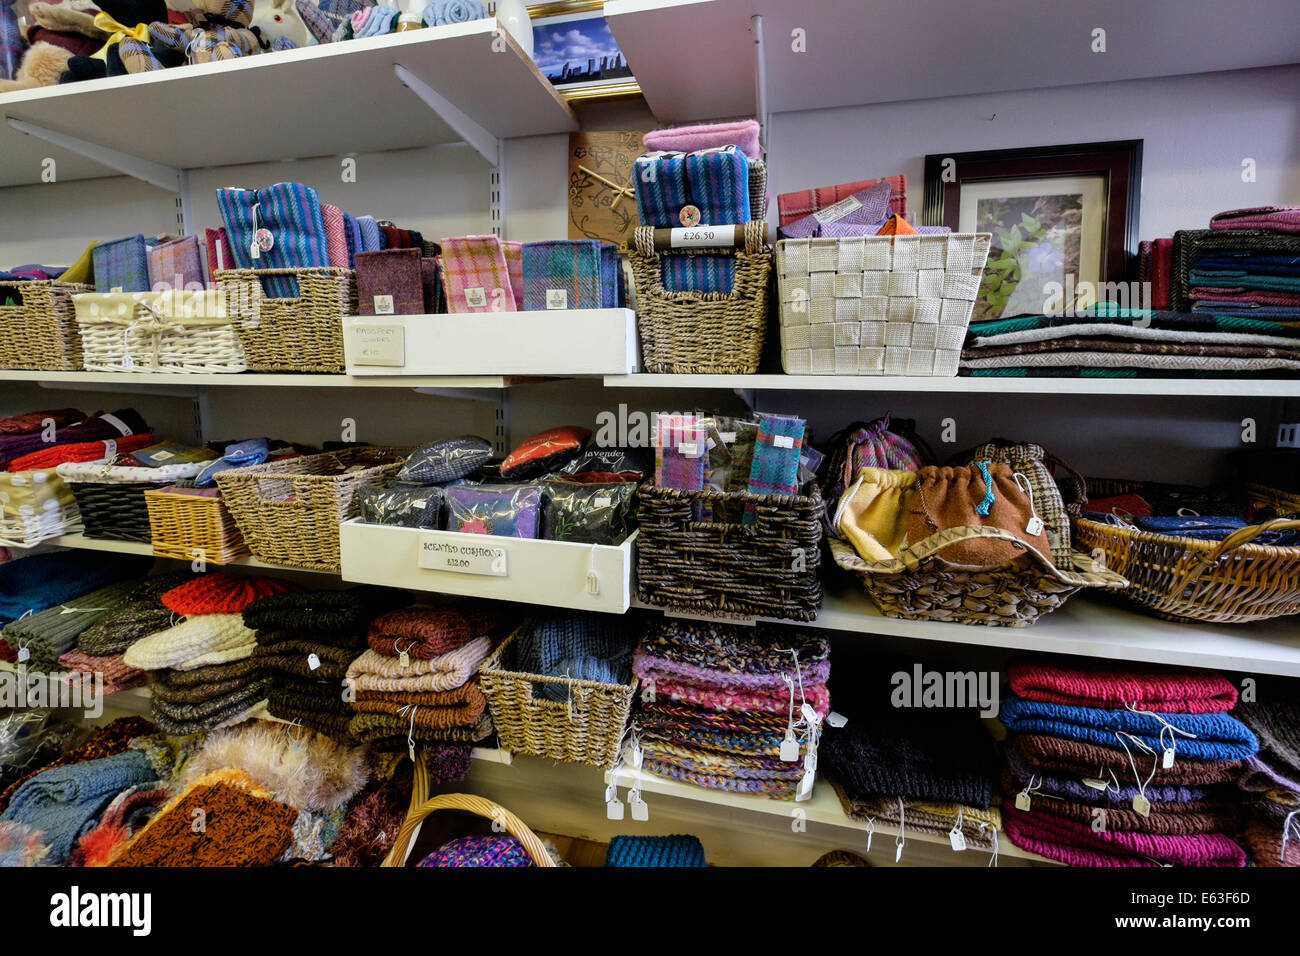 Hebridean tweed goods and souvenirs for sale on shelves in a gift shop selling local woolen crafts. Isle of Lewis - Stock Image